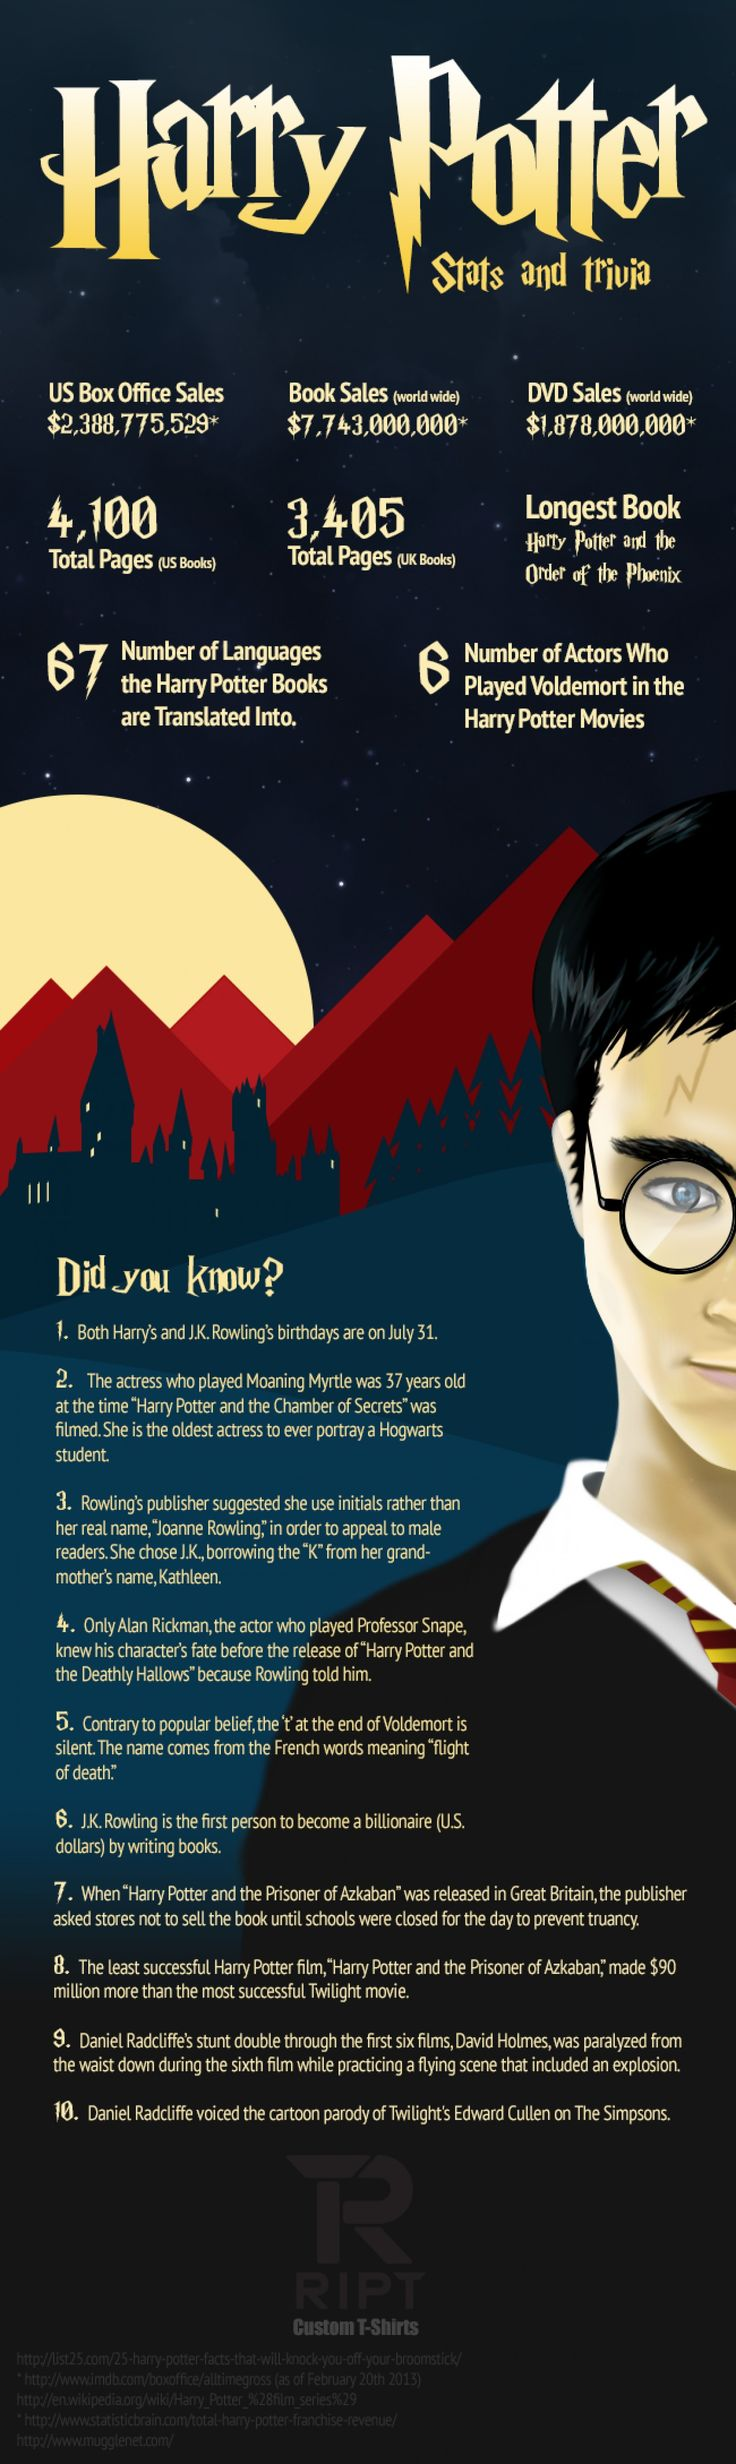 Harry Potter Fanfiction Facts shared by linchpinseo on Feb 25, 2013 in Entertainment